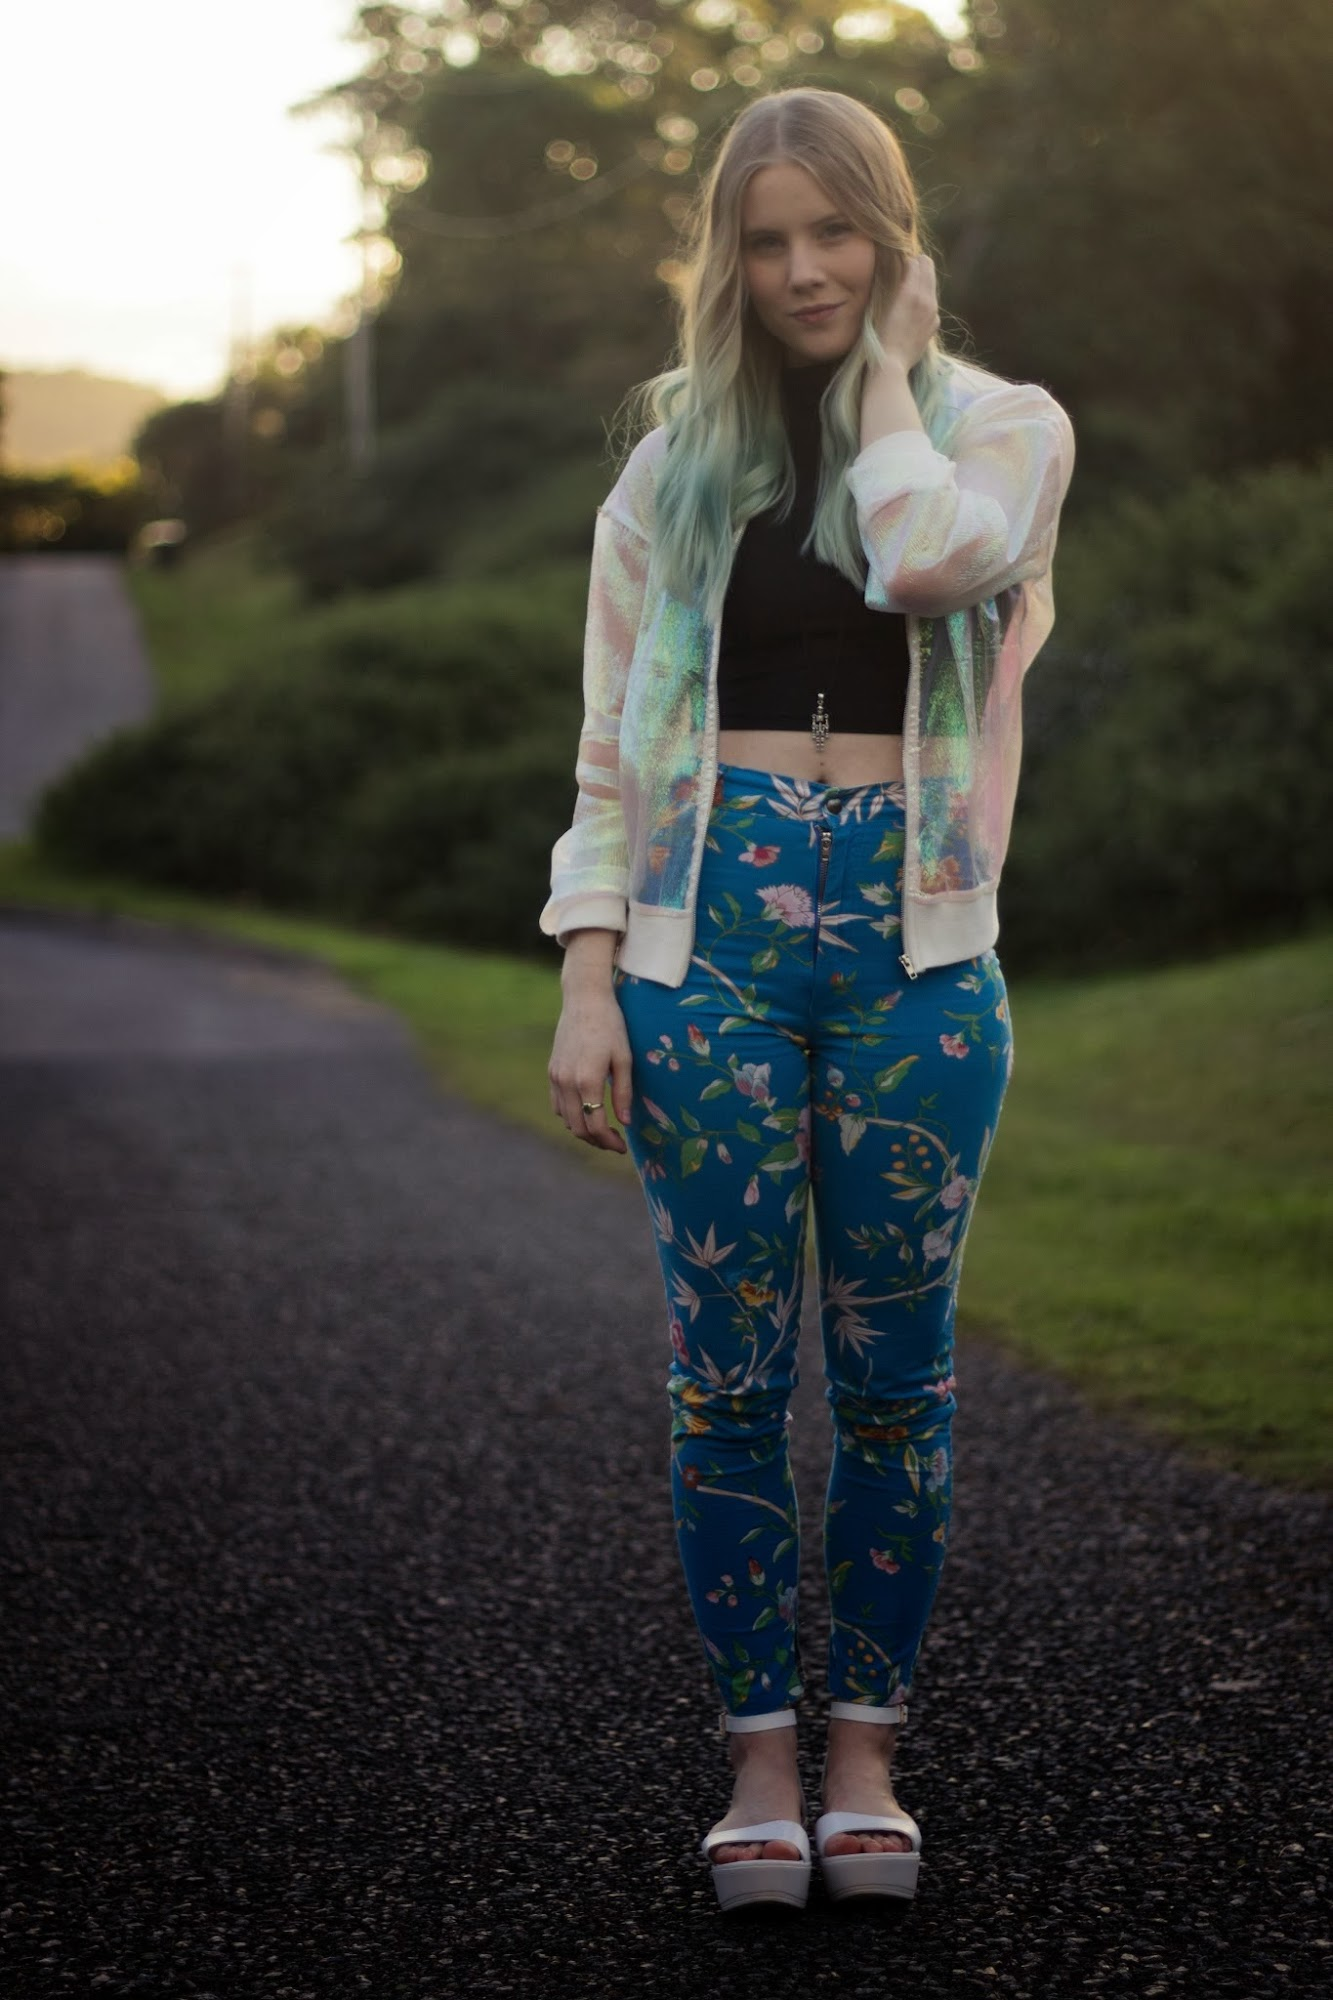 fashion blogger, ootd, iridescent bomber jacket, shimmery jacket, sheer, white bomber, front row shop coloured yarn jacket, vintage floral pants, topshop white flatform sandals, blue ombre hair, pastel dip dye,